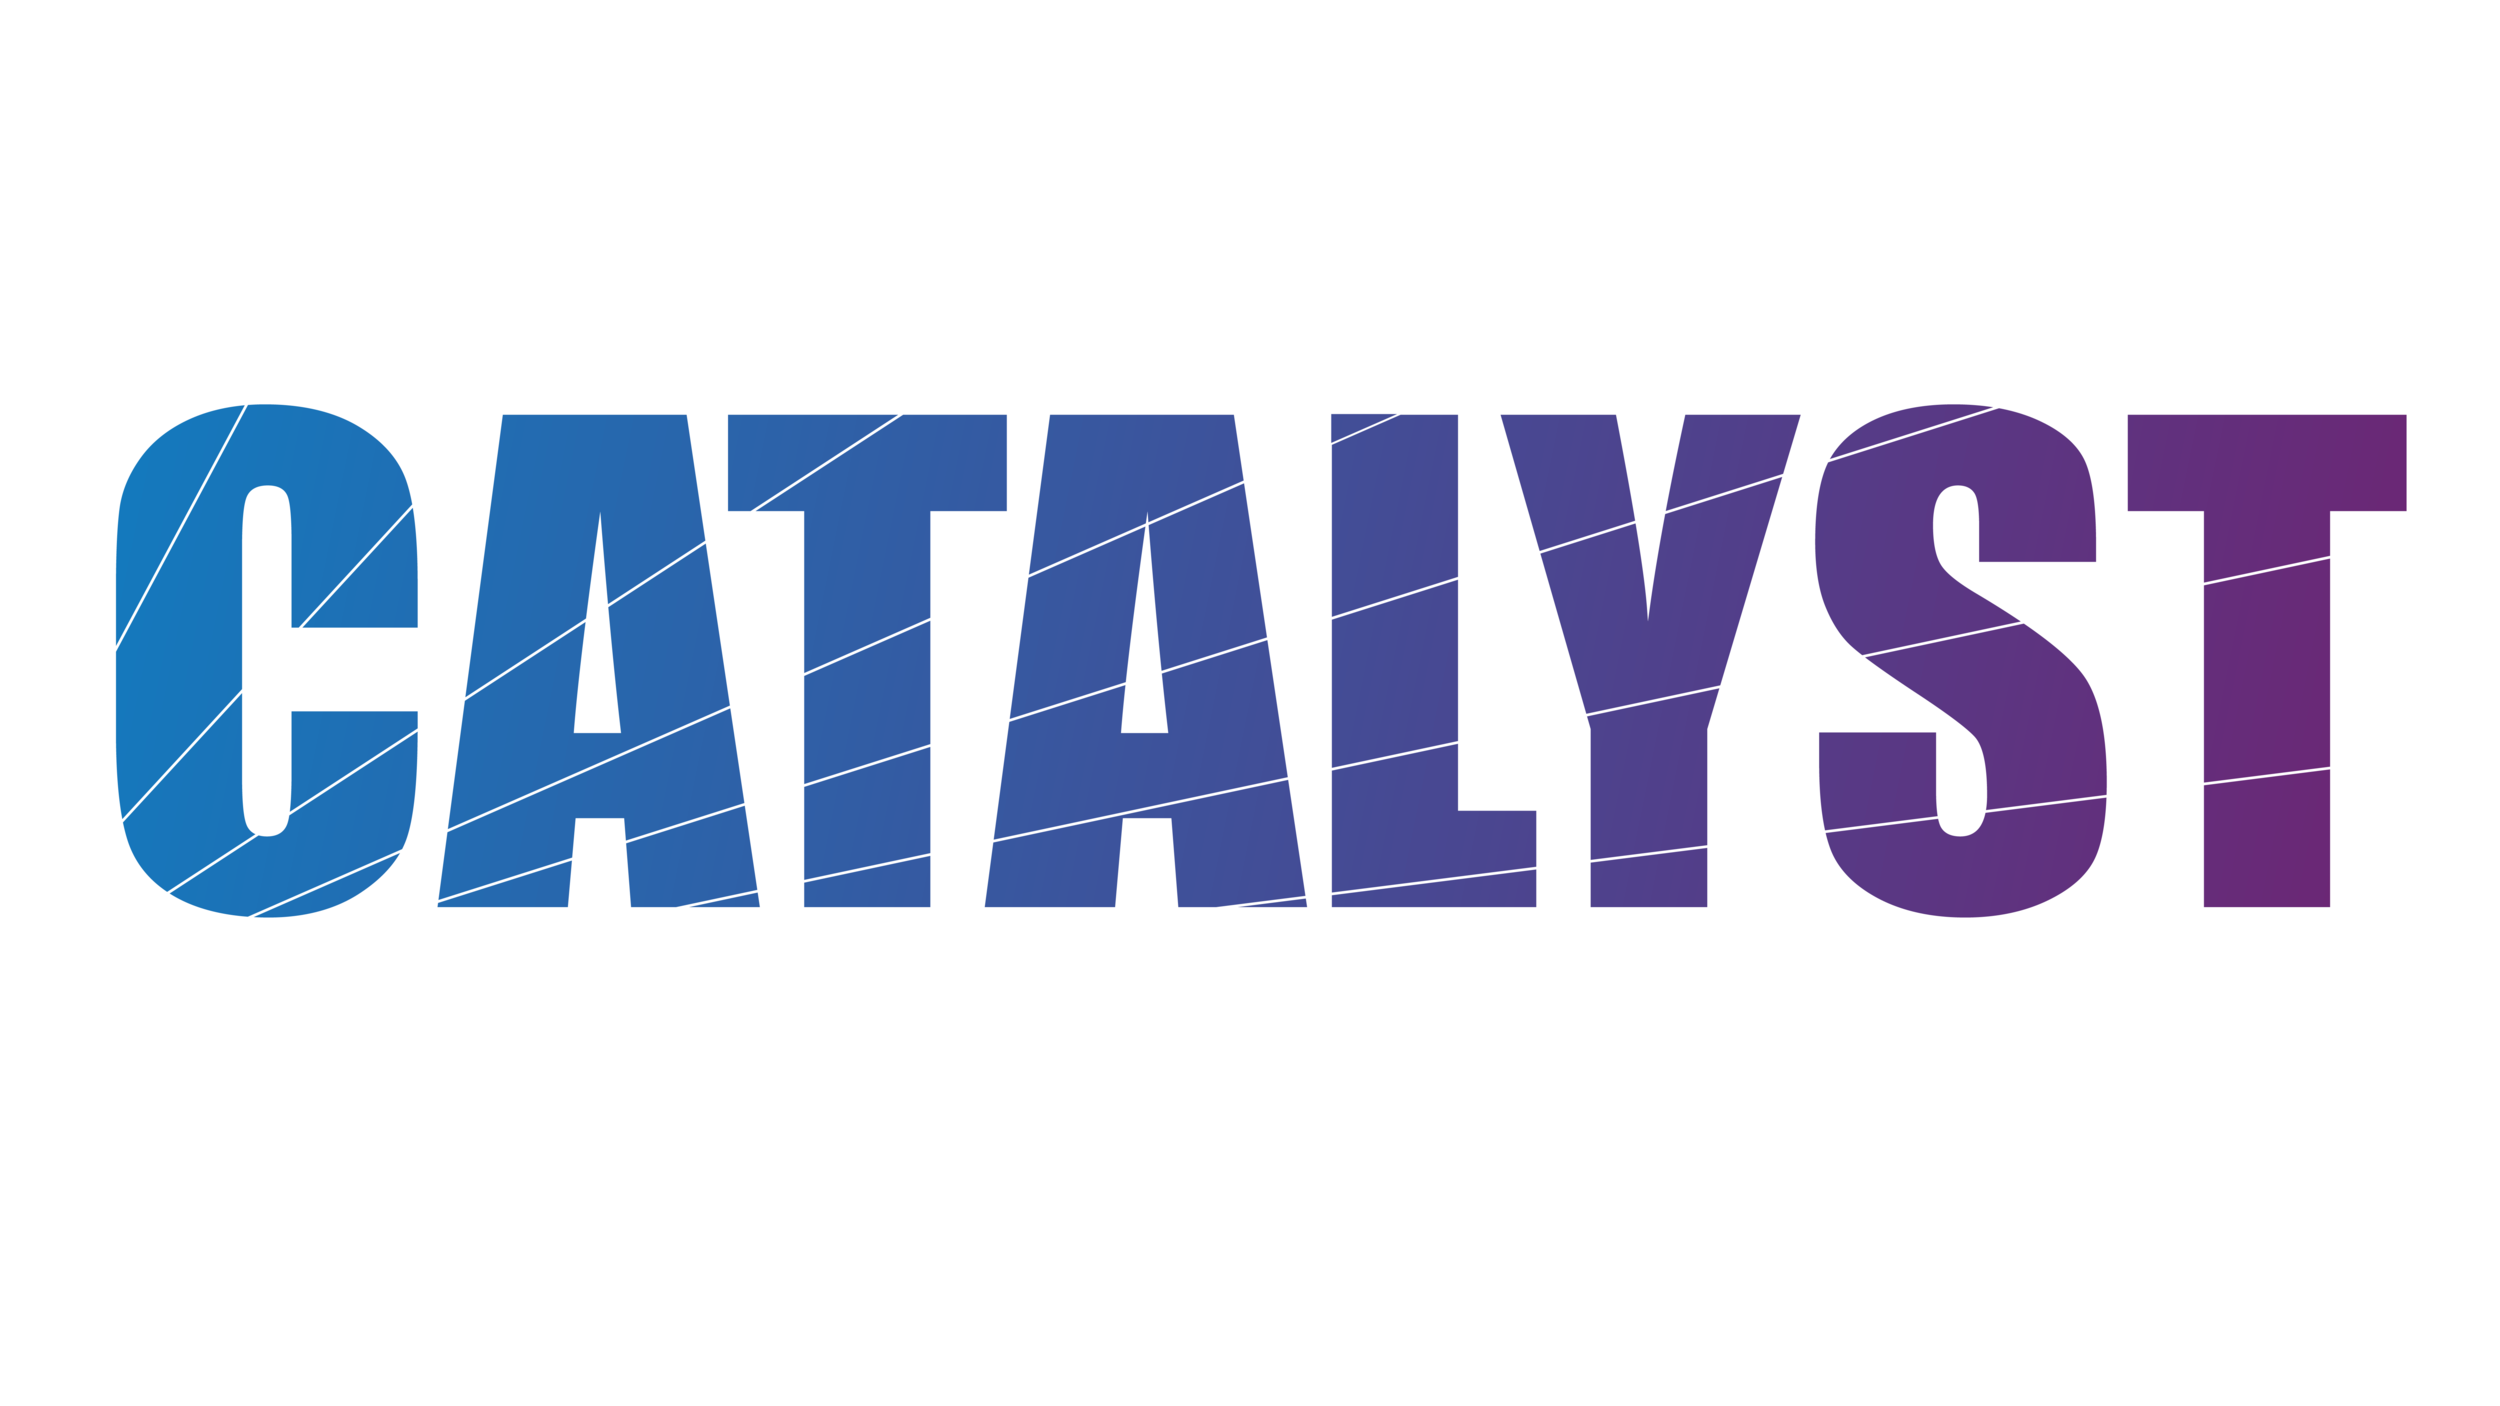 Sterling Sanders, Catalyst Logo V2